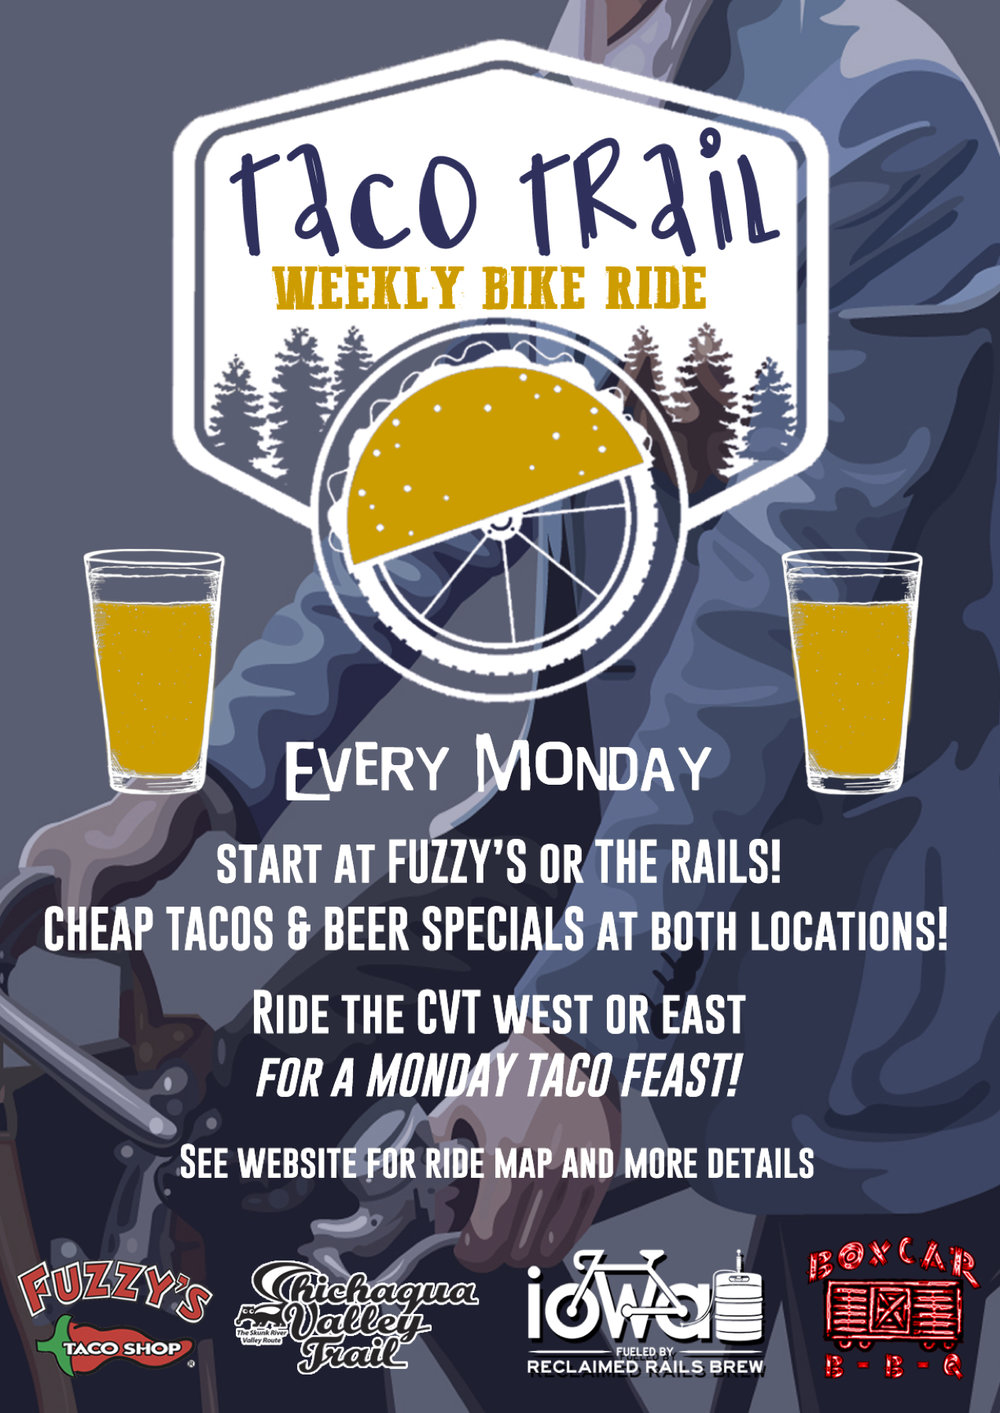 Fuzzy taco trail monday ride.jpg